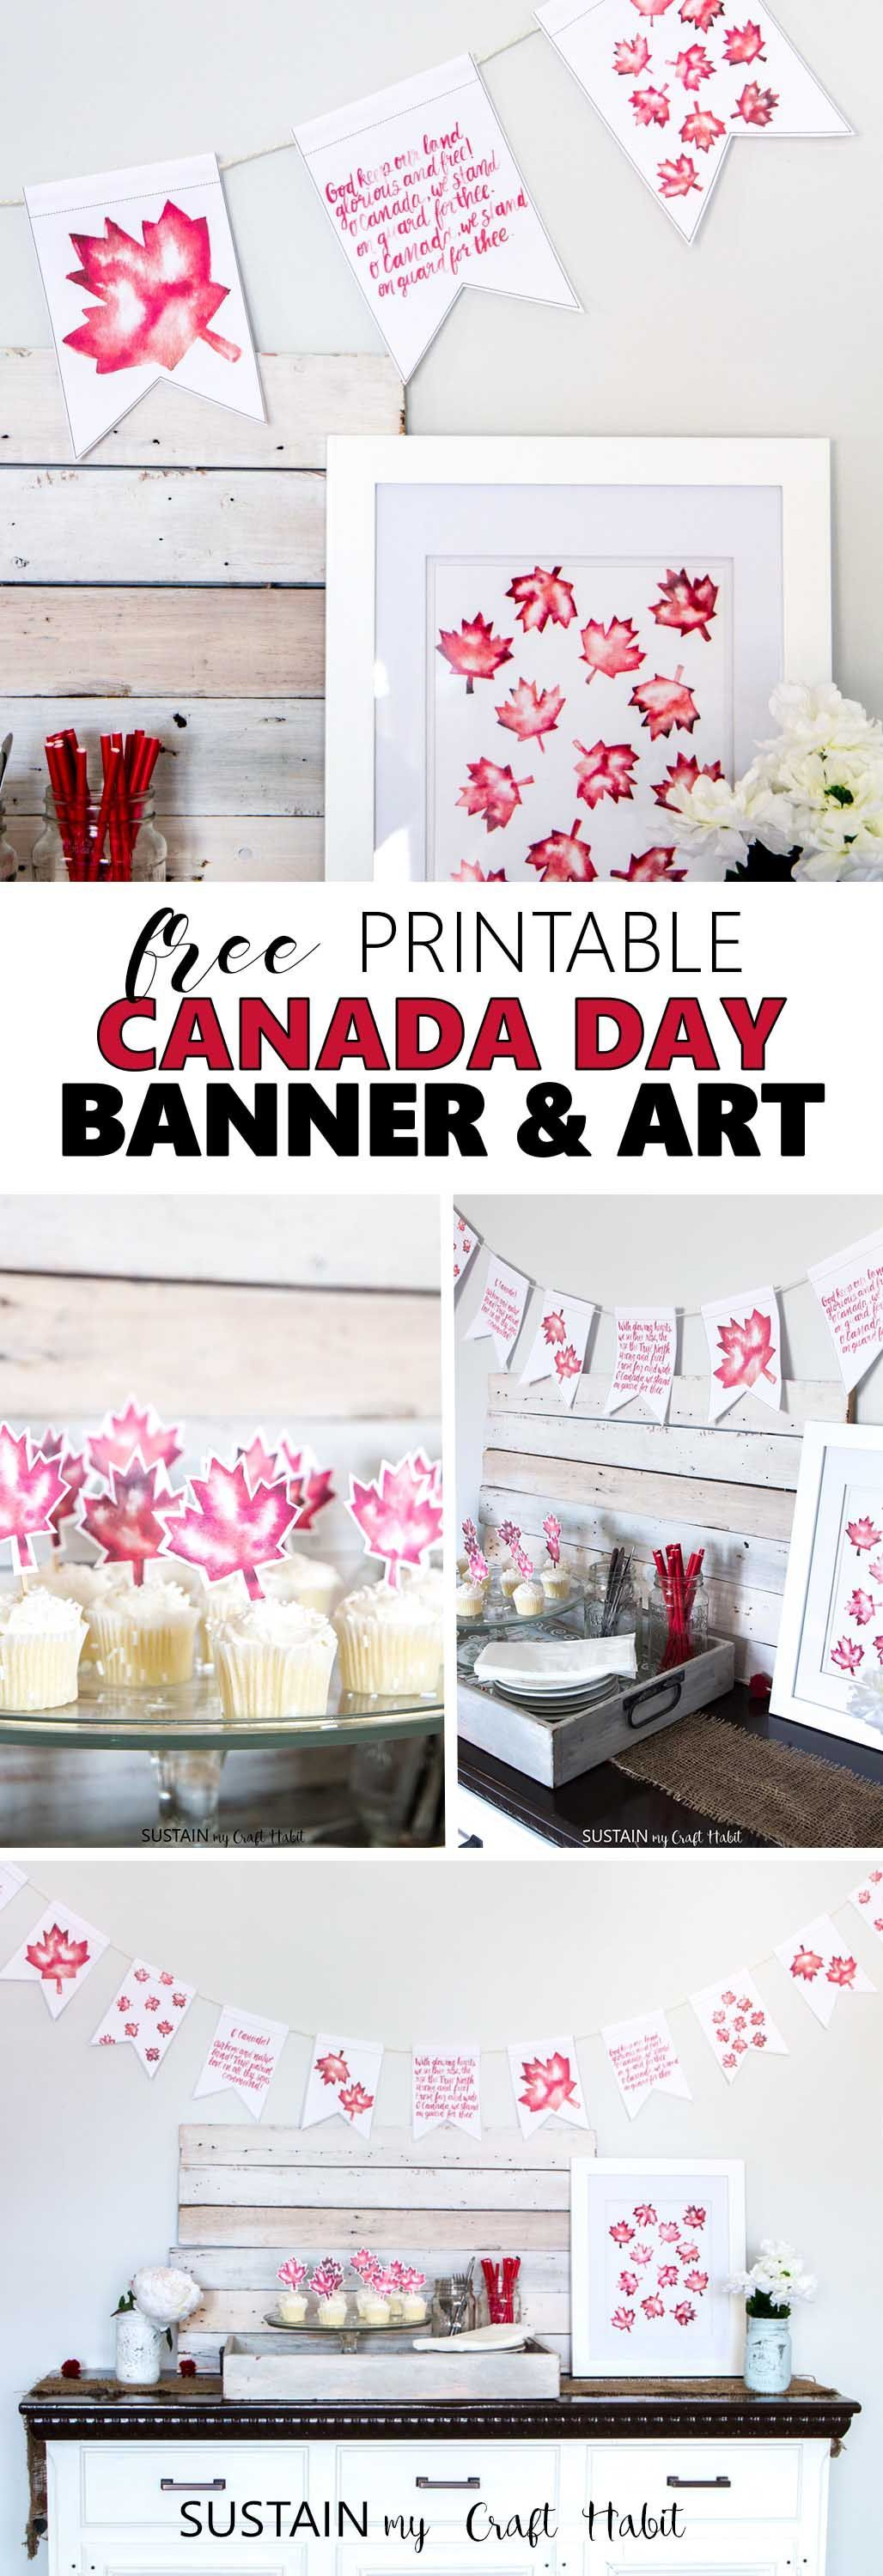 Canada Day Decorating Ideas Free Printable Banner and Maple Leaf